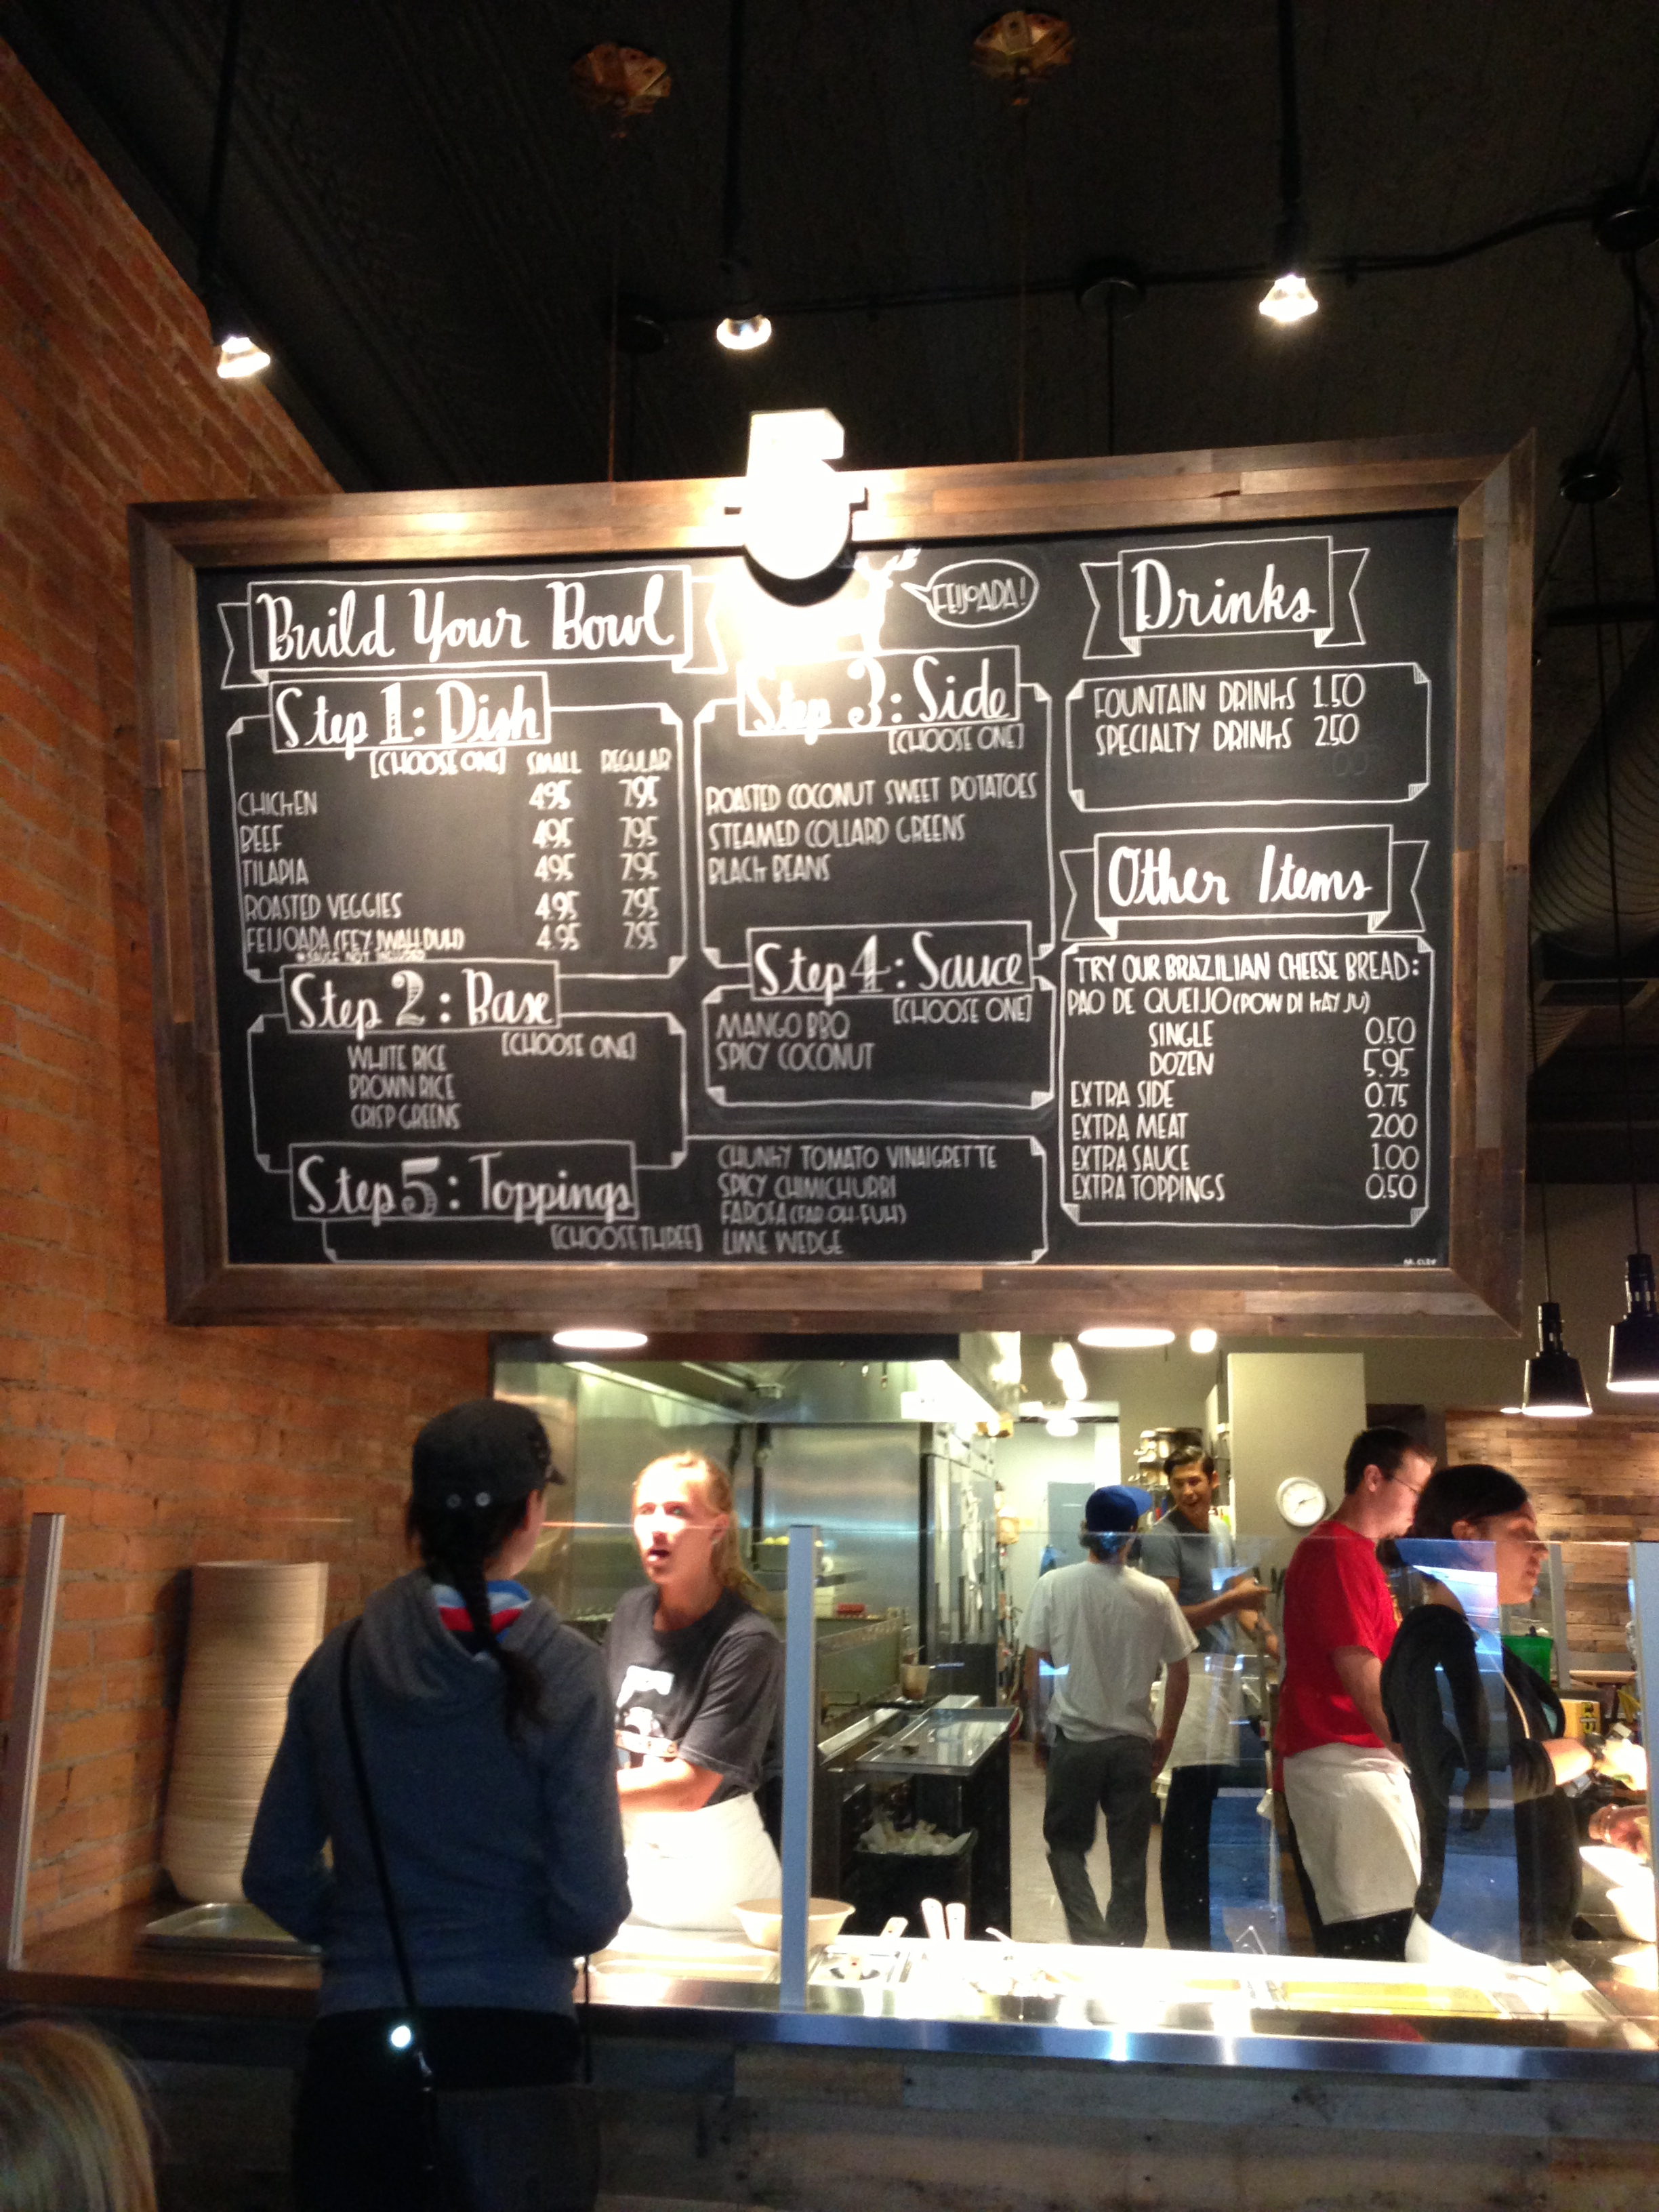 The Five On Black menu is depicted on a chalkboard.